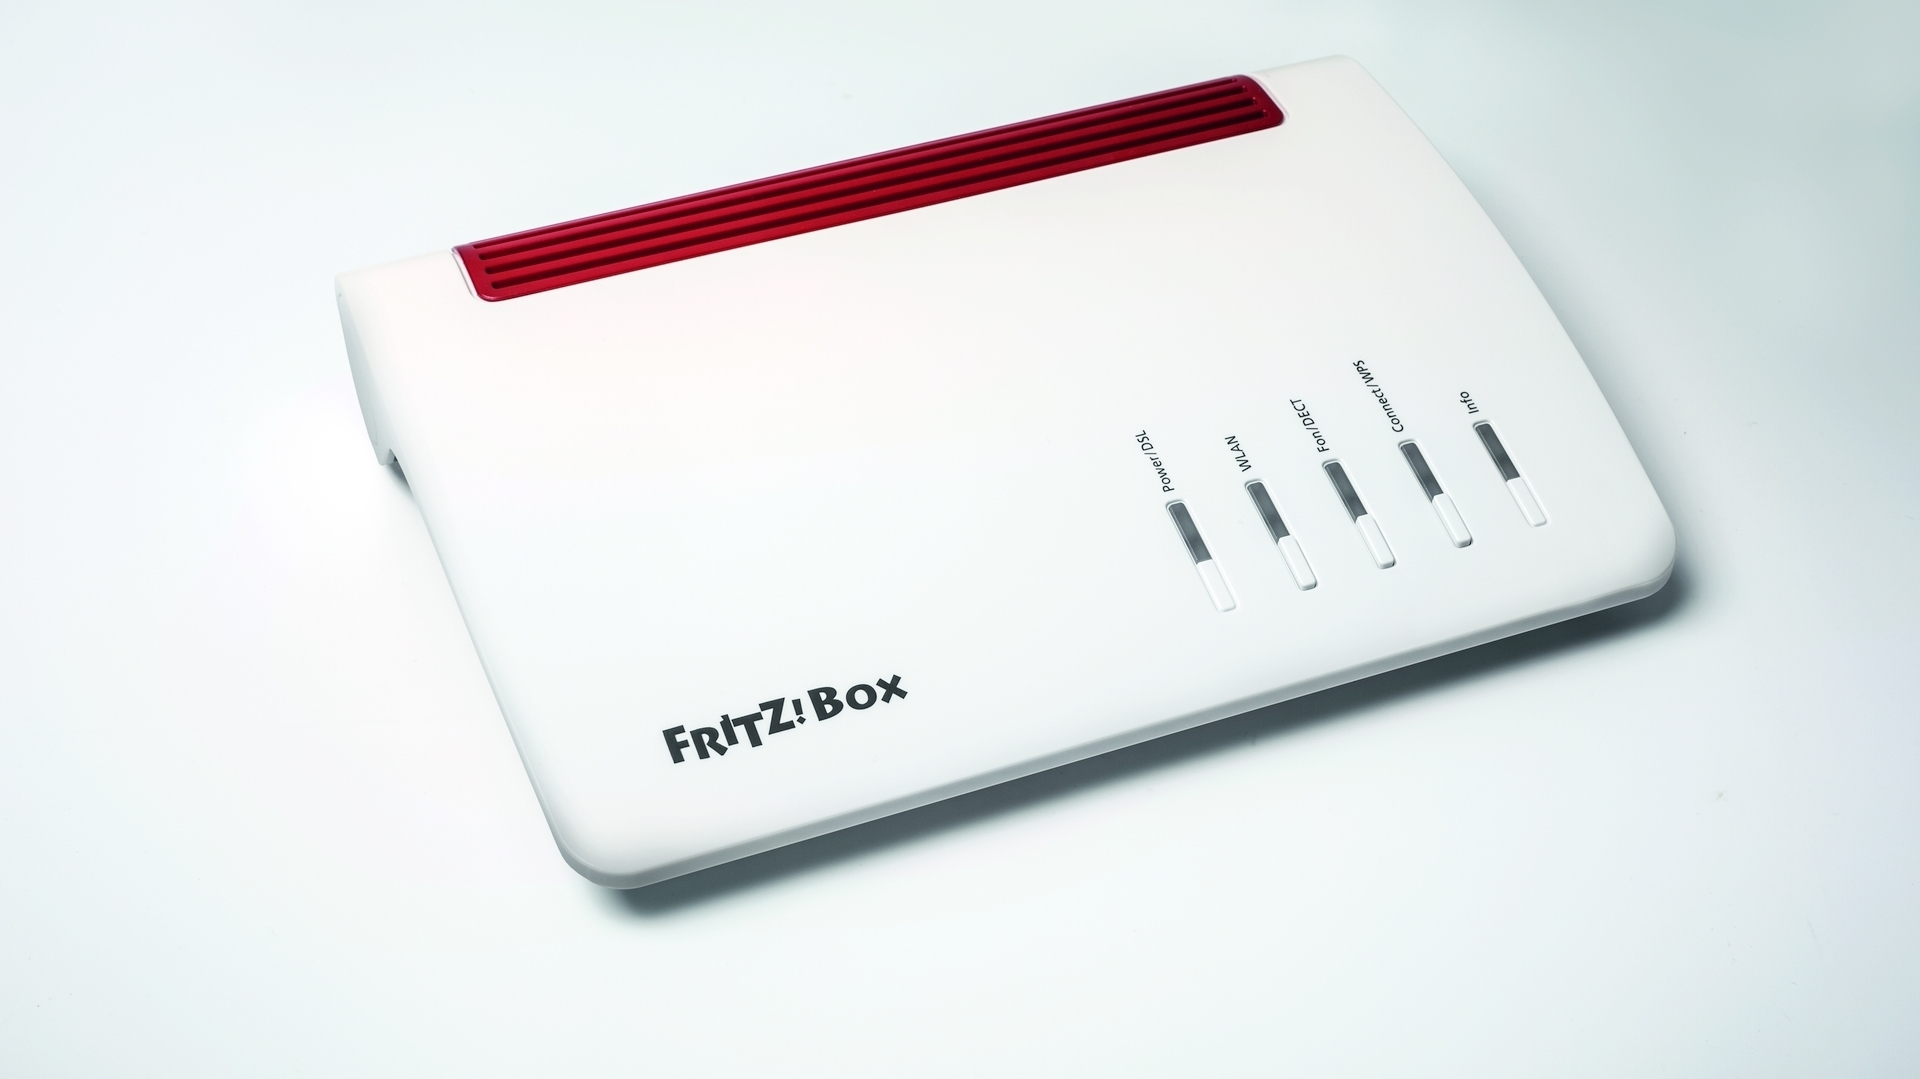 Smart Home Geräte Fritzbox : fritzbox als smart home zentrale c 39 t magazin ~ Watch28wear.com Haus und Dekorationen